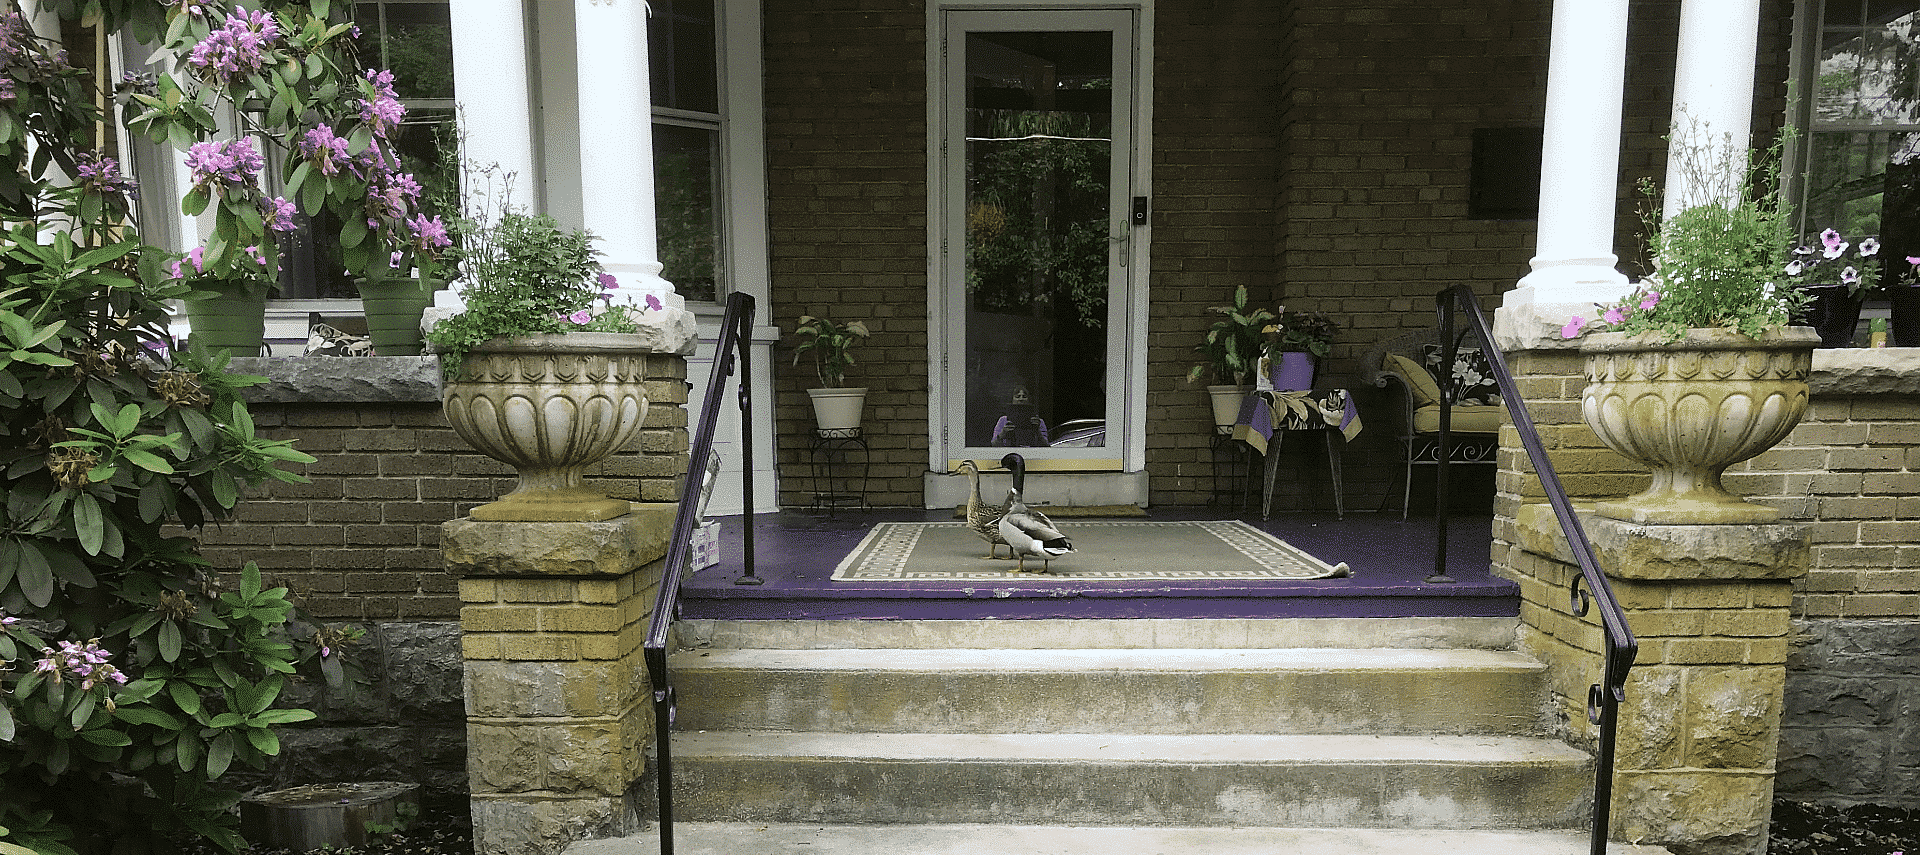 Front porch of a home surrounded by flowering bushes, potted plants with two ducks standing by the doorway